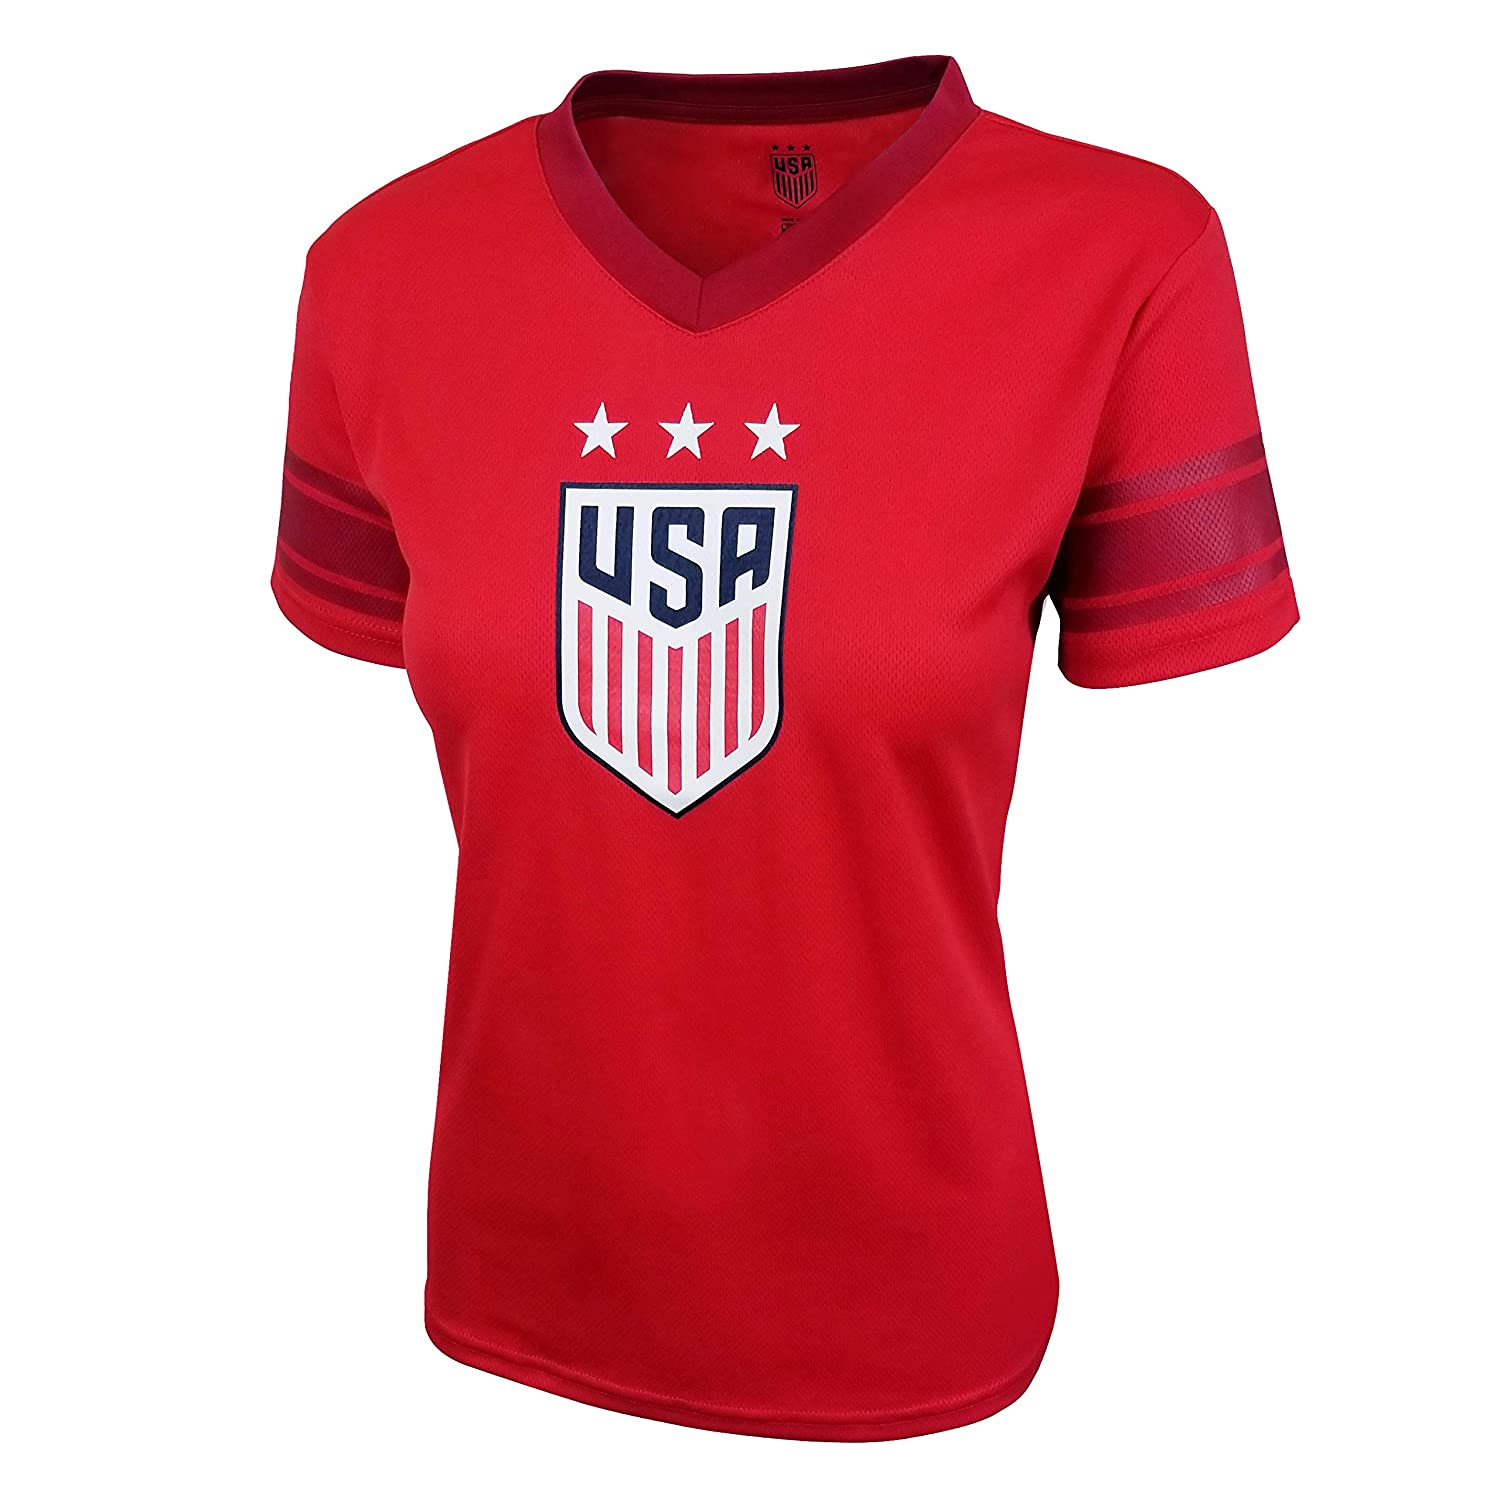 Icon Sports U.S Alternate Red, Large Soccer USWNT Womens Football Polymesh Tee